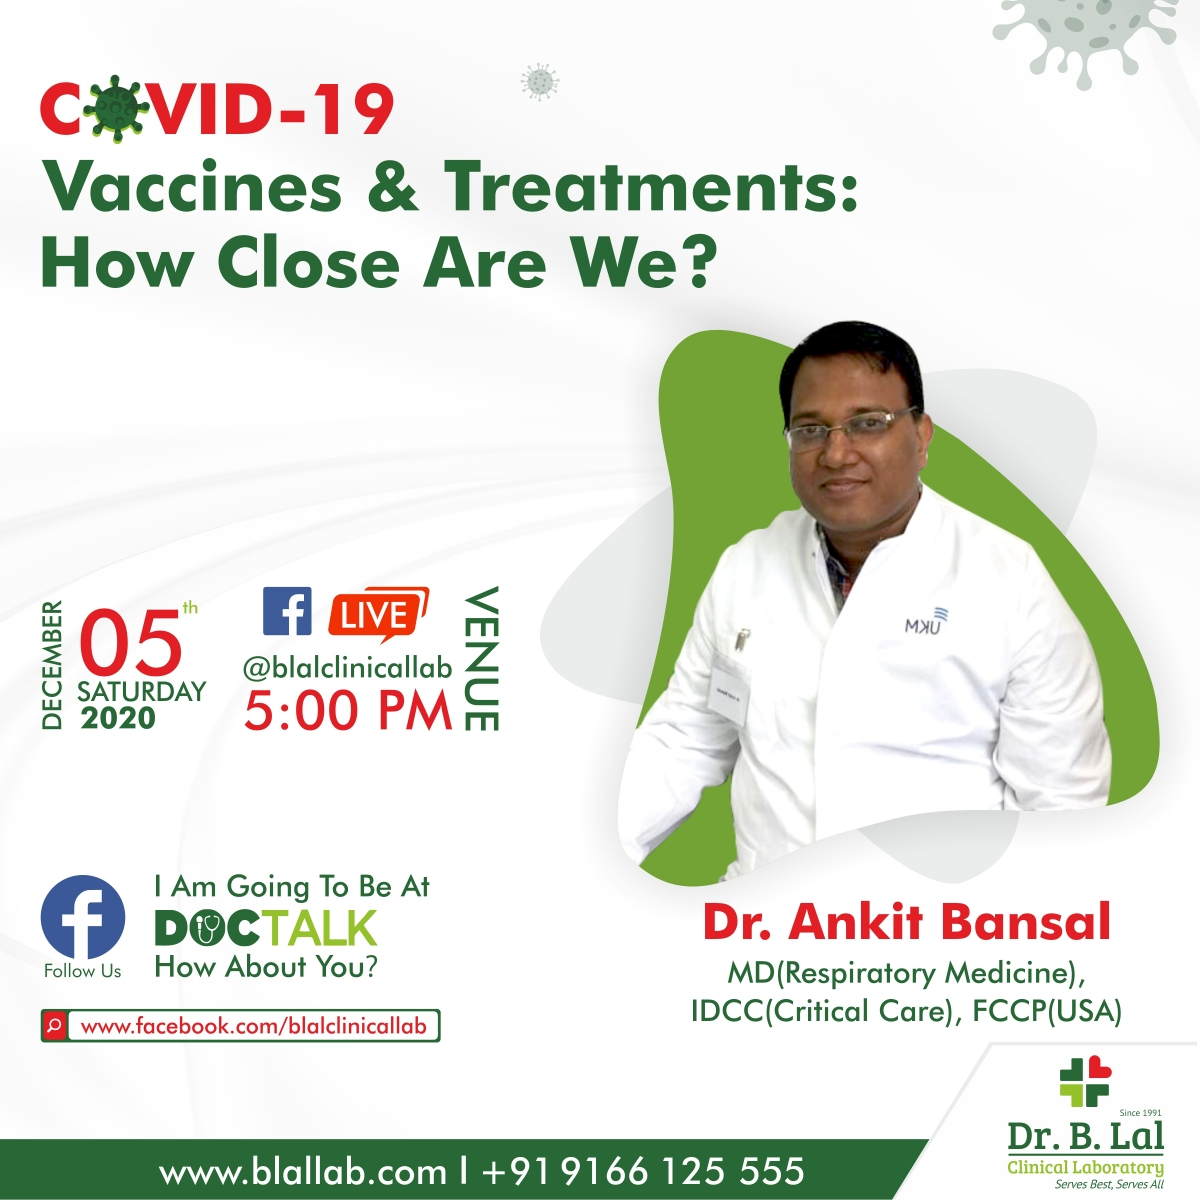 #DocTalk | COVID-19 Vaccines & Treatments: How close are we? | Dr. Ankit Bansal